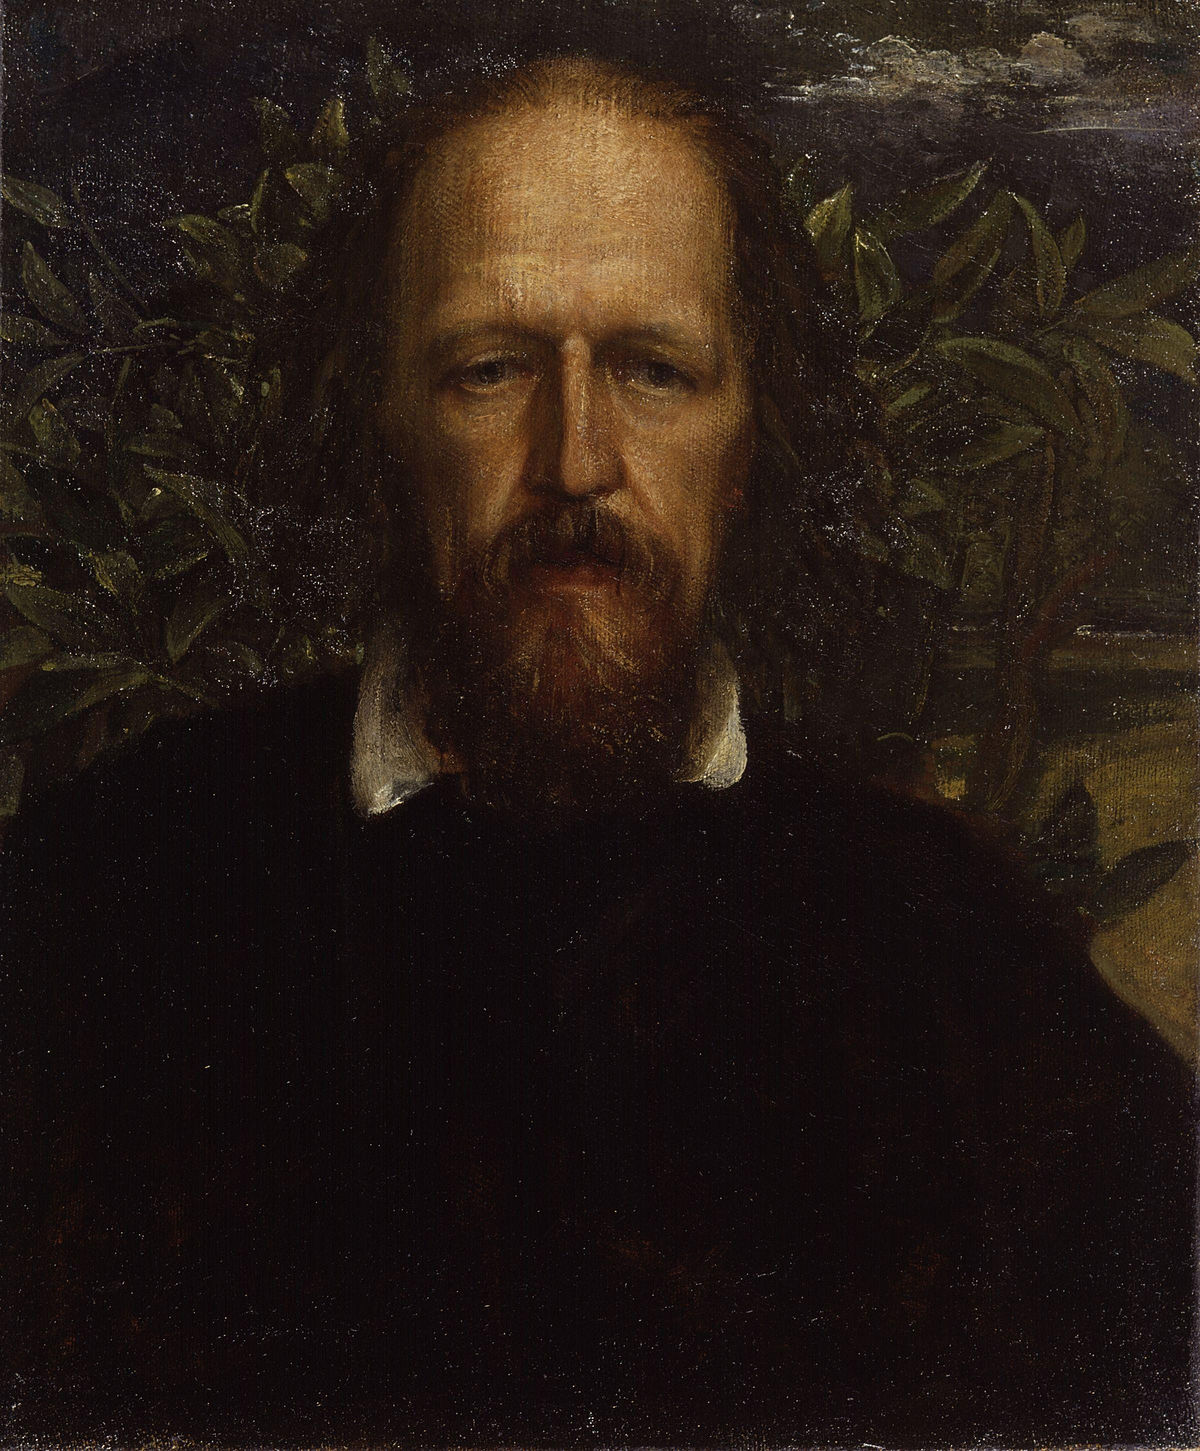 Books by Alfred Tennyson